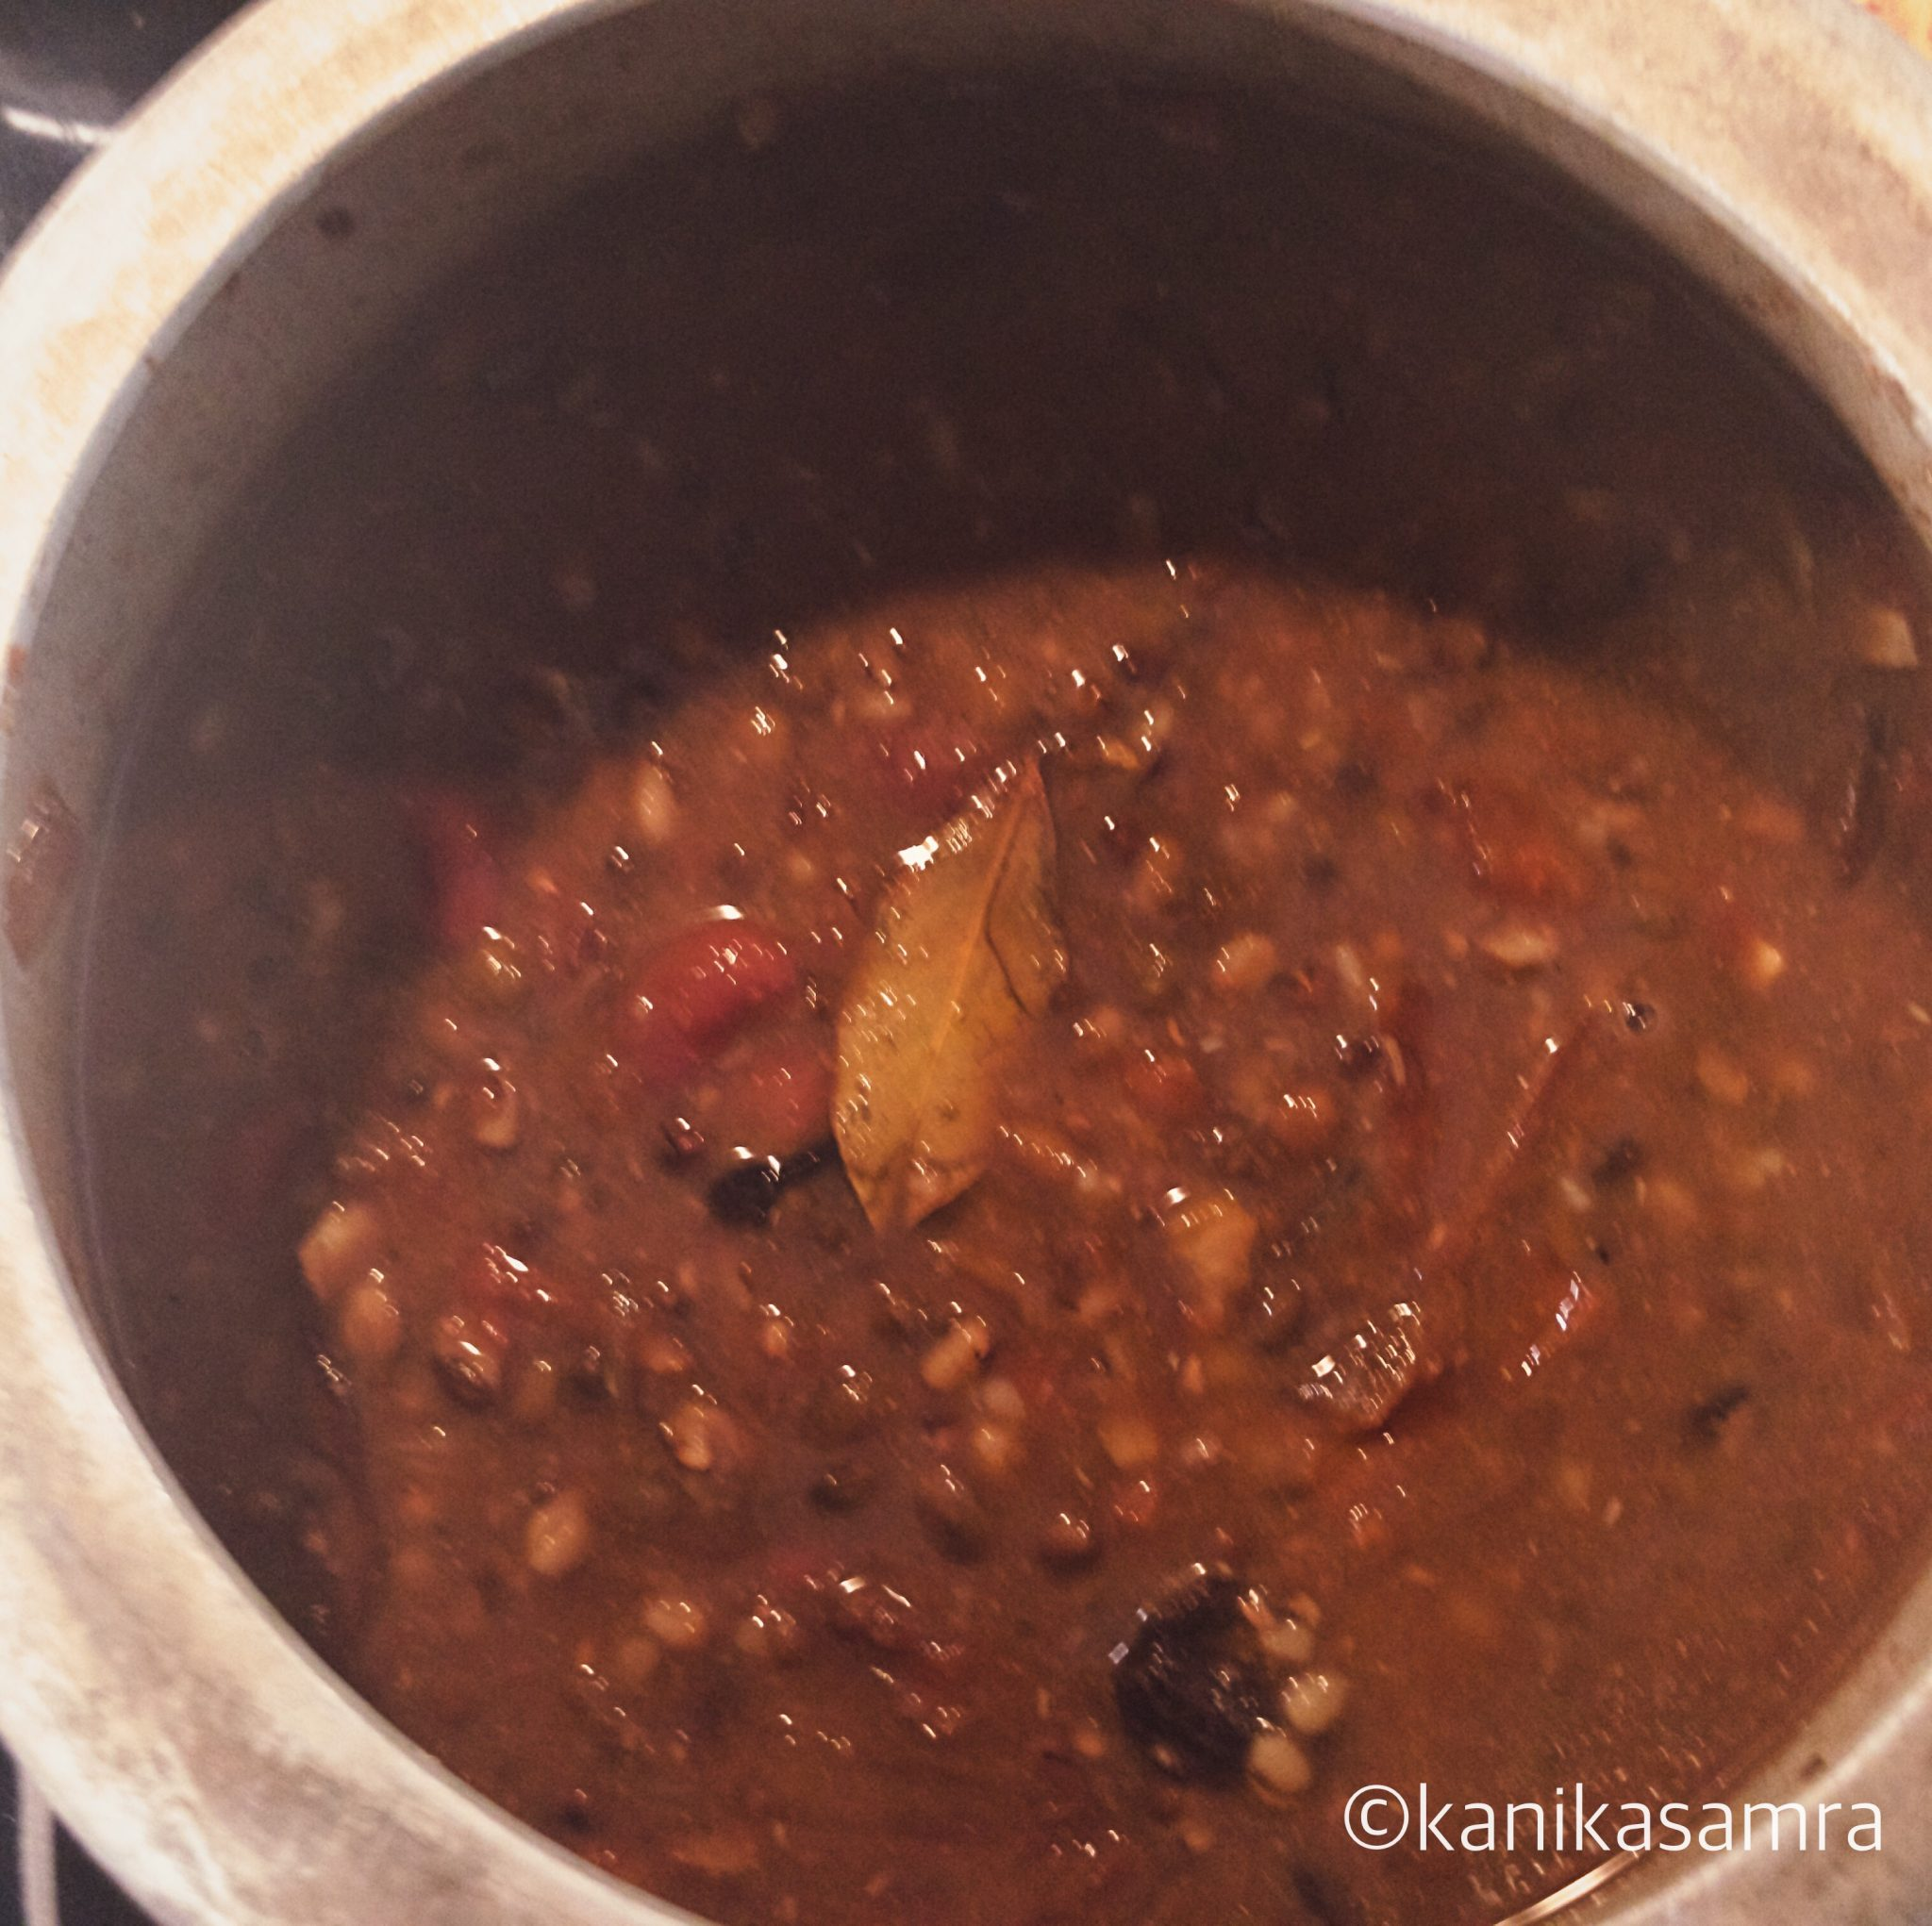 Mixing Masala in the Dal